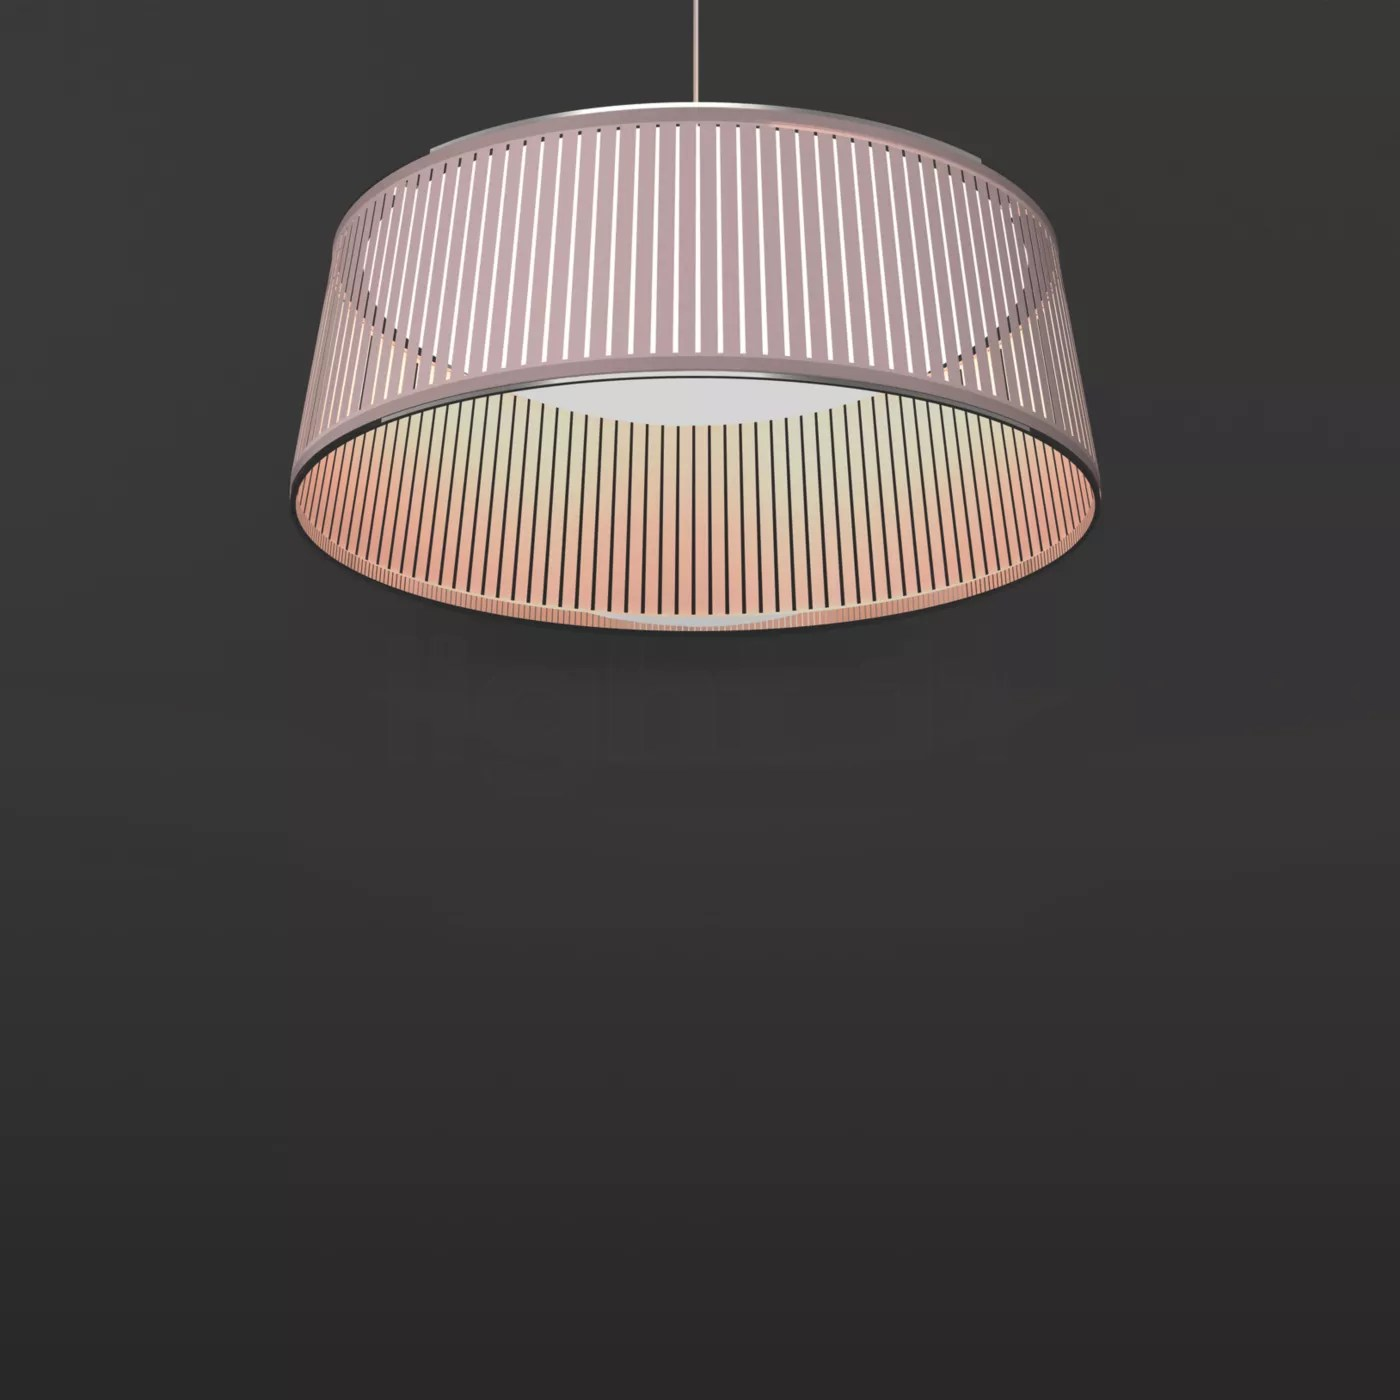 Hanglamp Led Design Pablo Designs Solis Drum Hanglamp Led Kopen Bij Light11 Nl